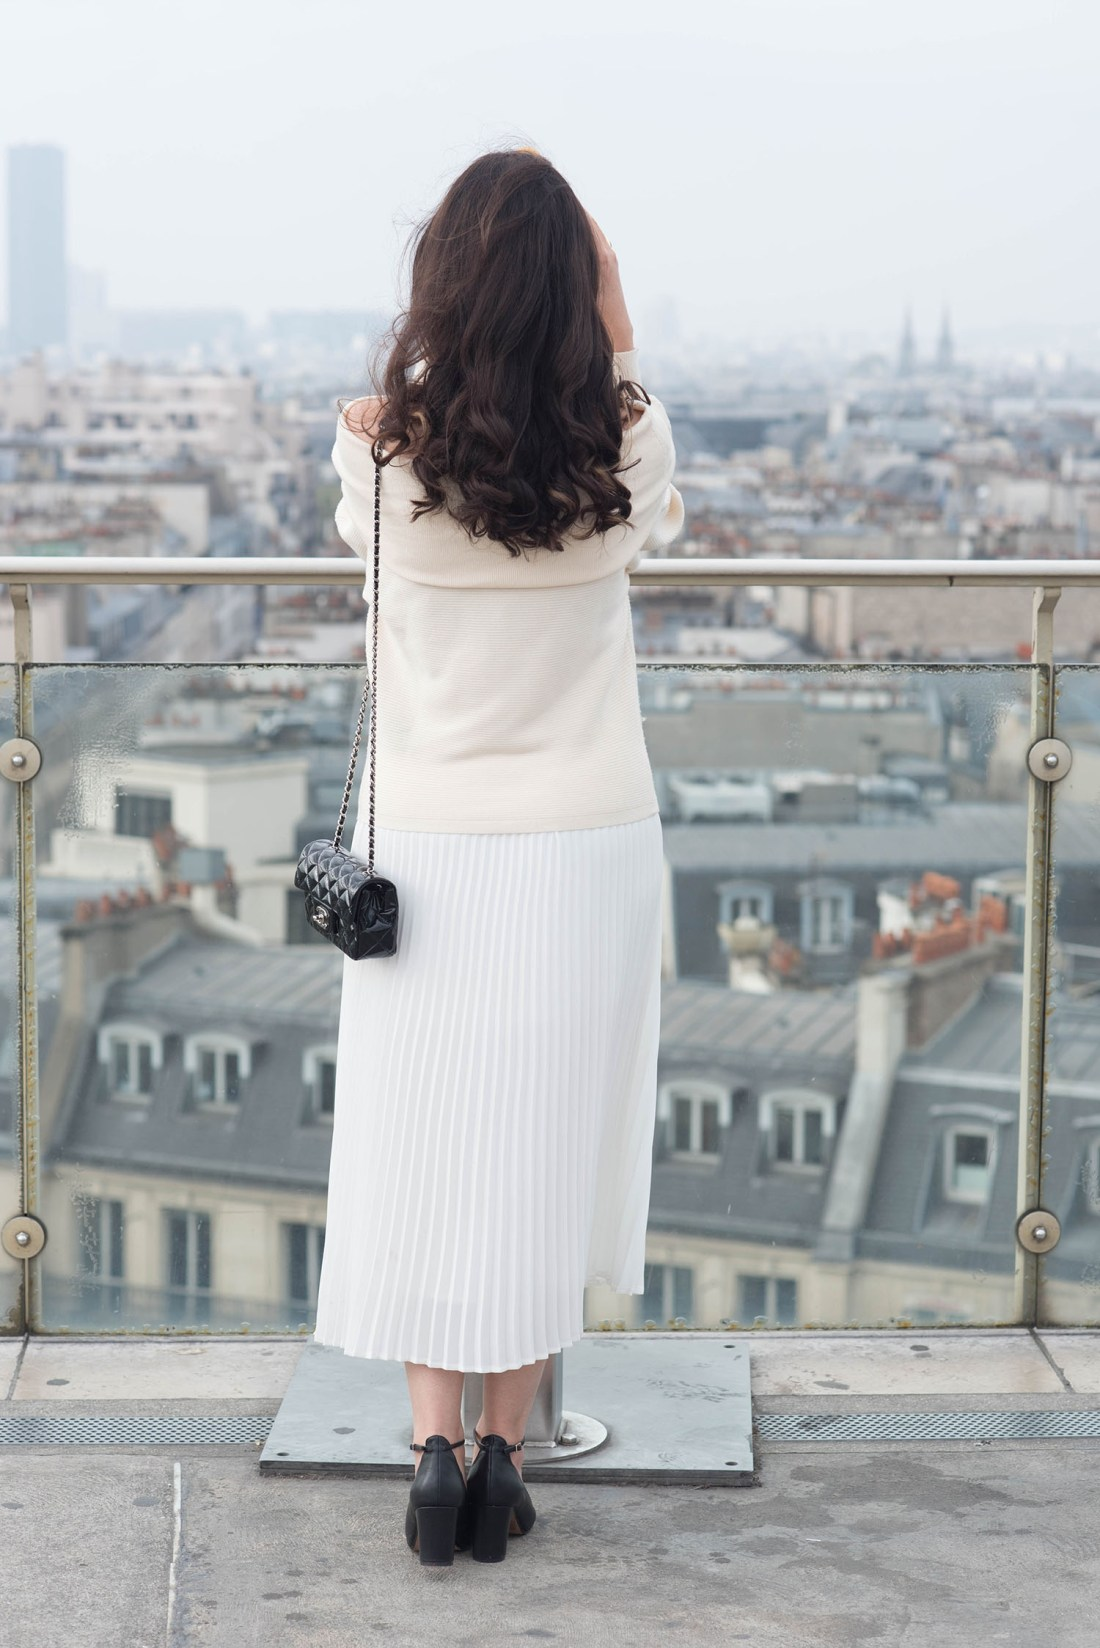 Brunette fashion blogger Cee Fardoe of Coco & Vera looks out over the rooftops of Paris wearing a white Aritzia skirt and carrying a black Chanel handbag